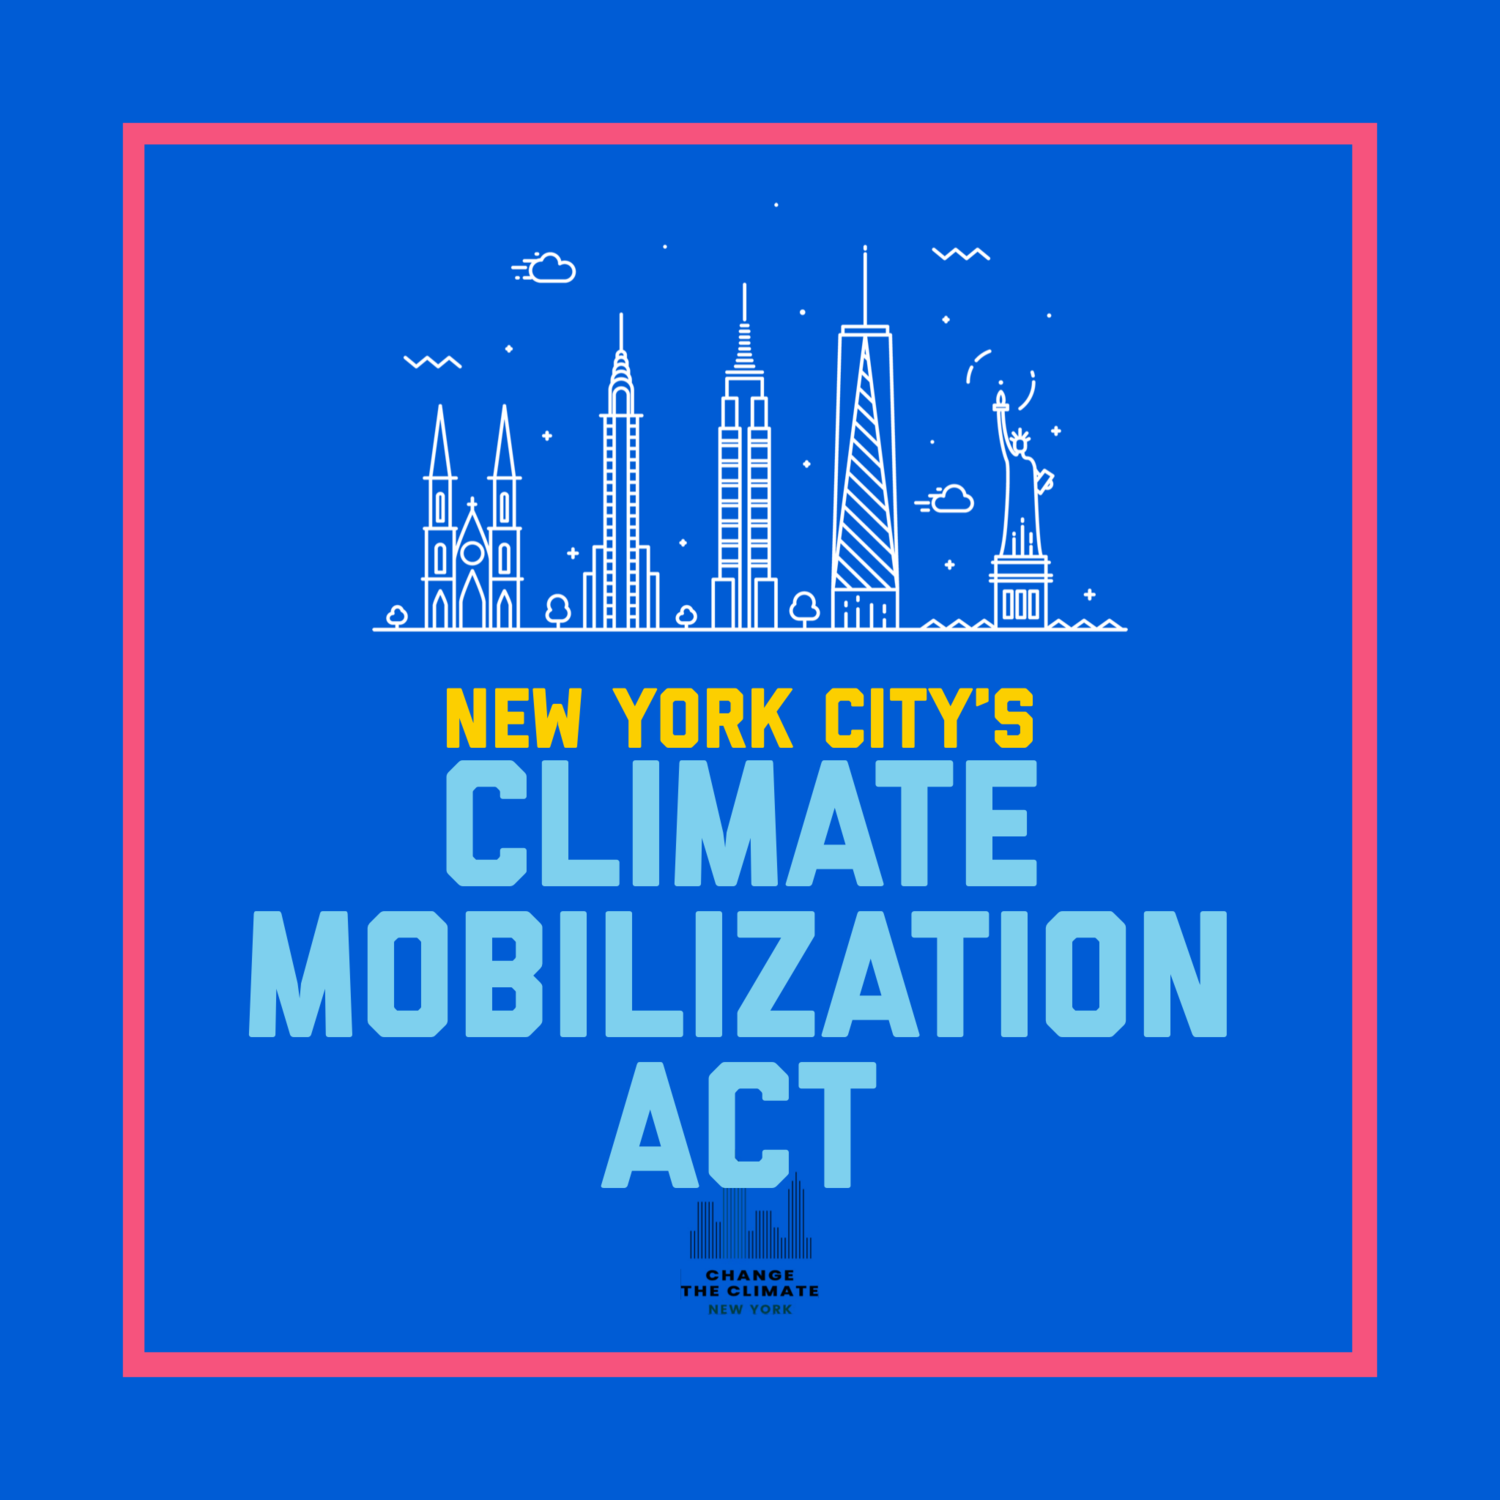 NYC's Climate Mobilization Act